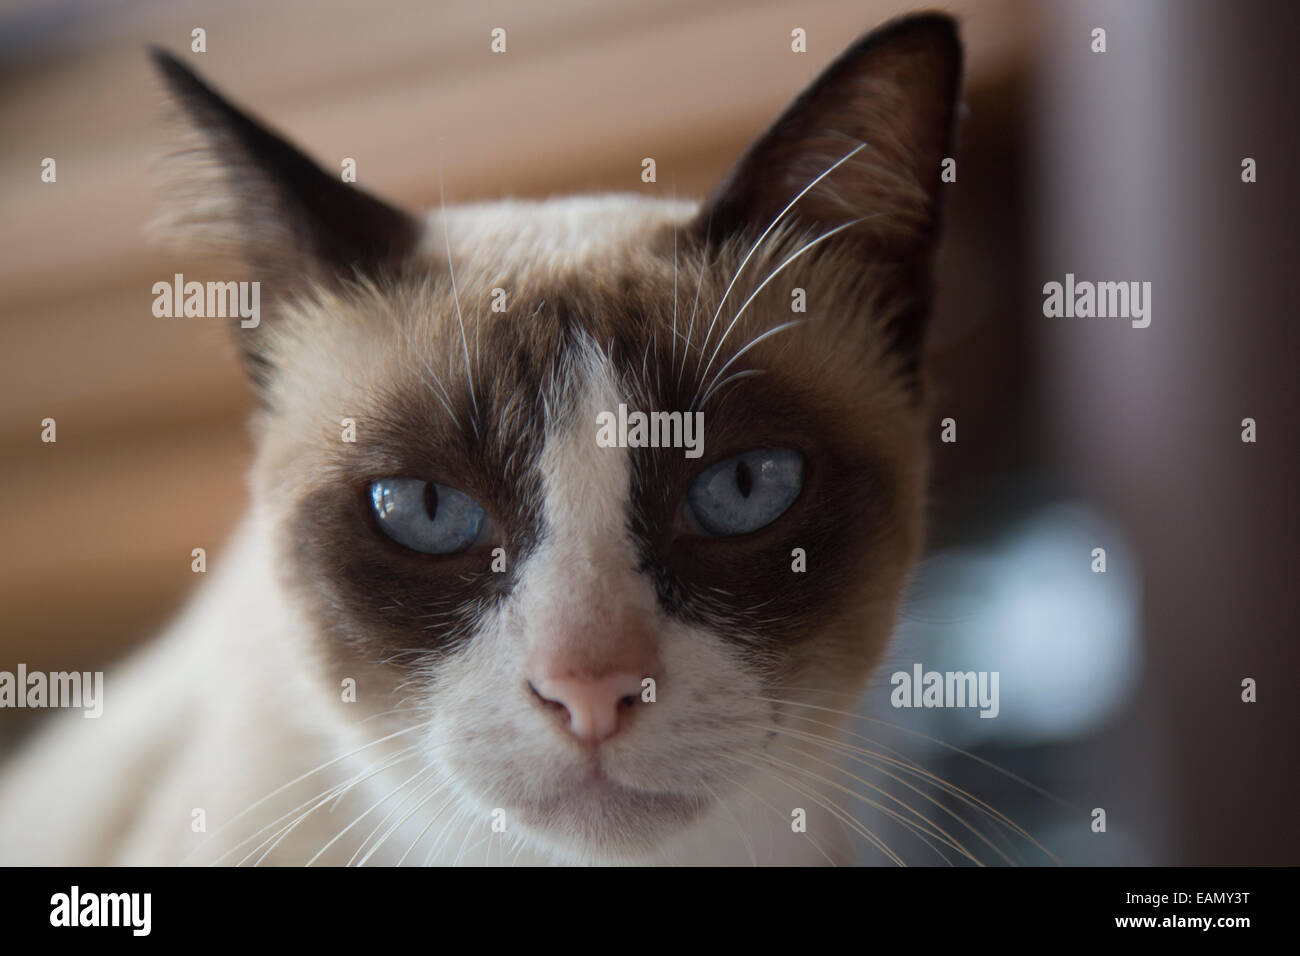 Portrait d'un chat de raquette, Thaïlande Photo Stock